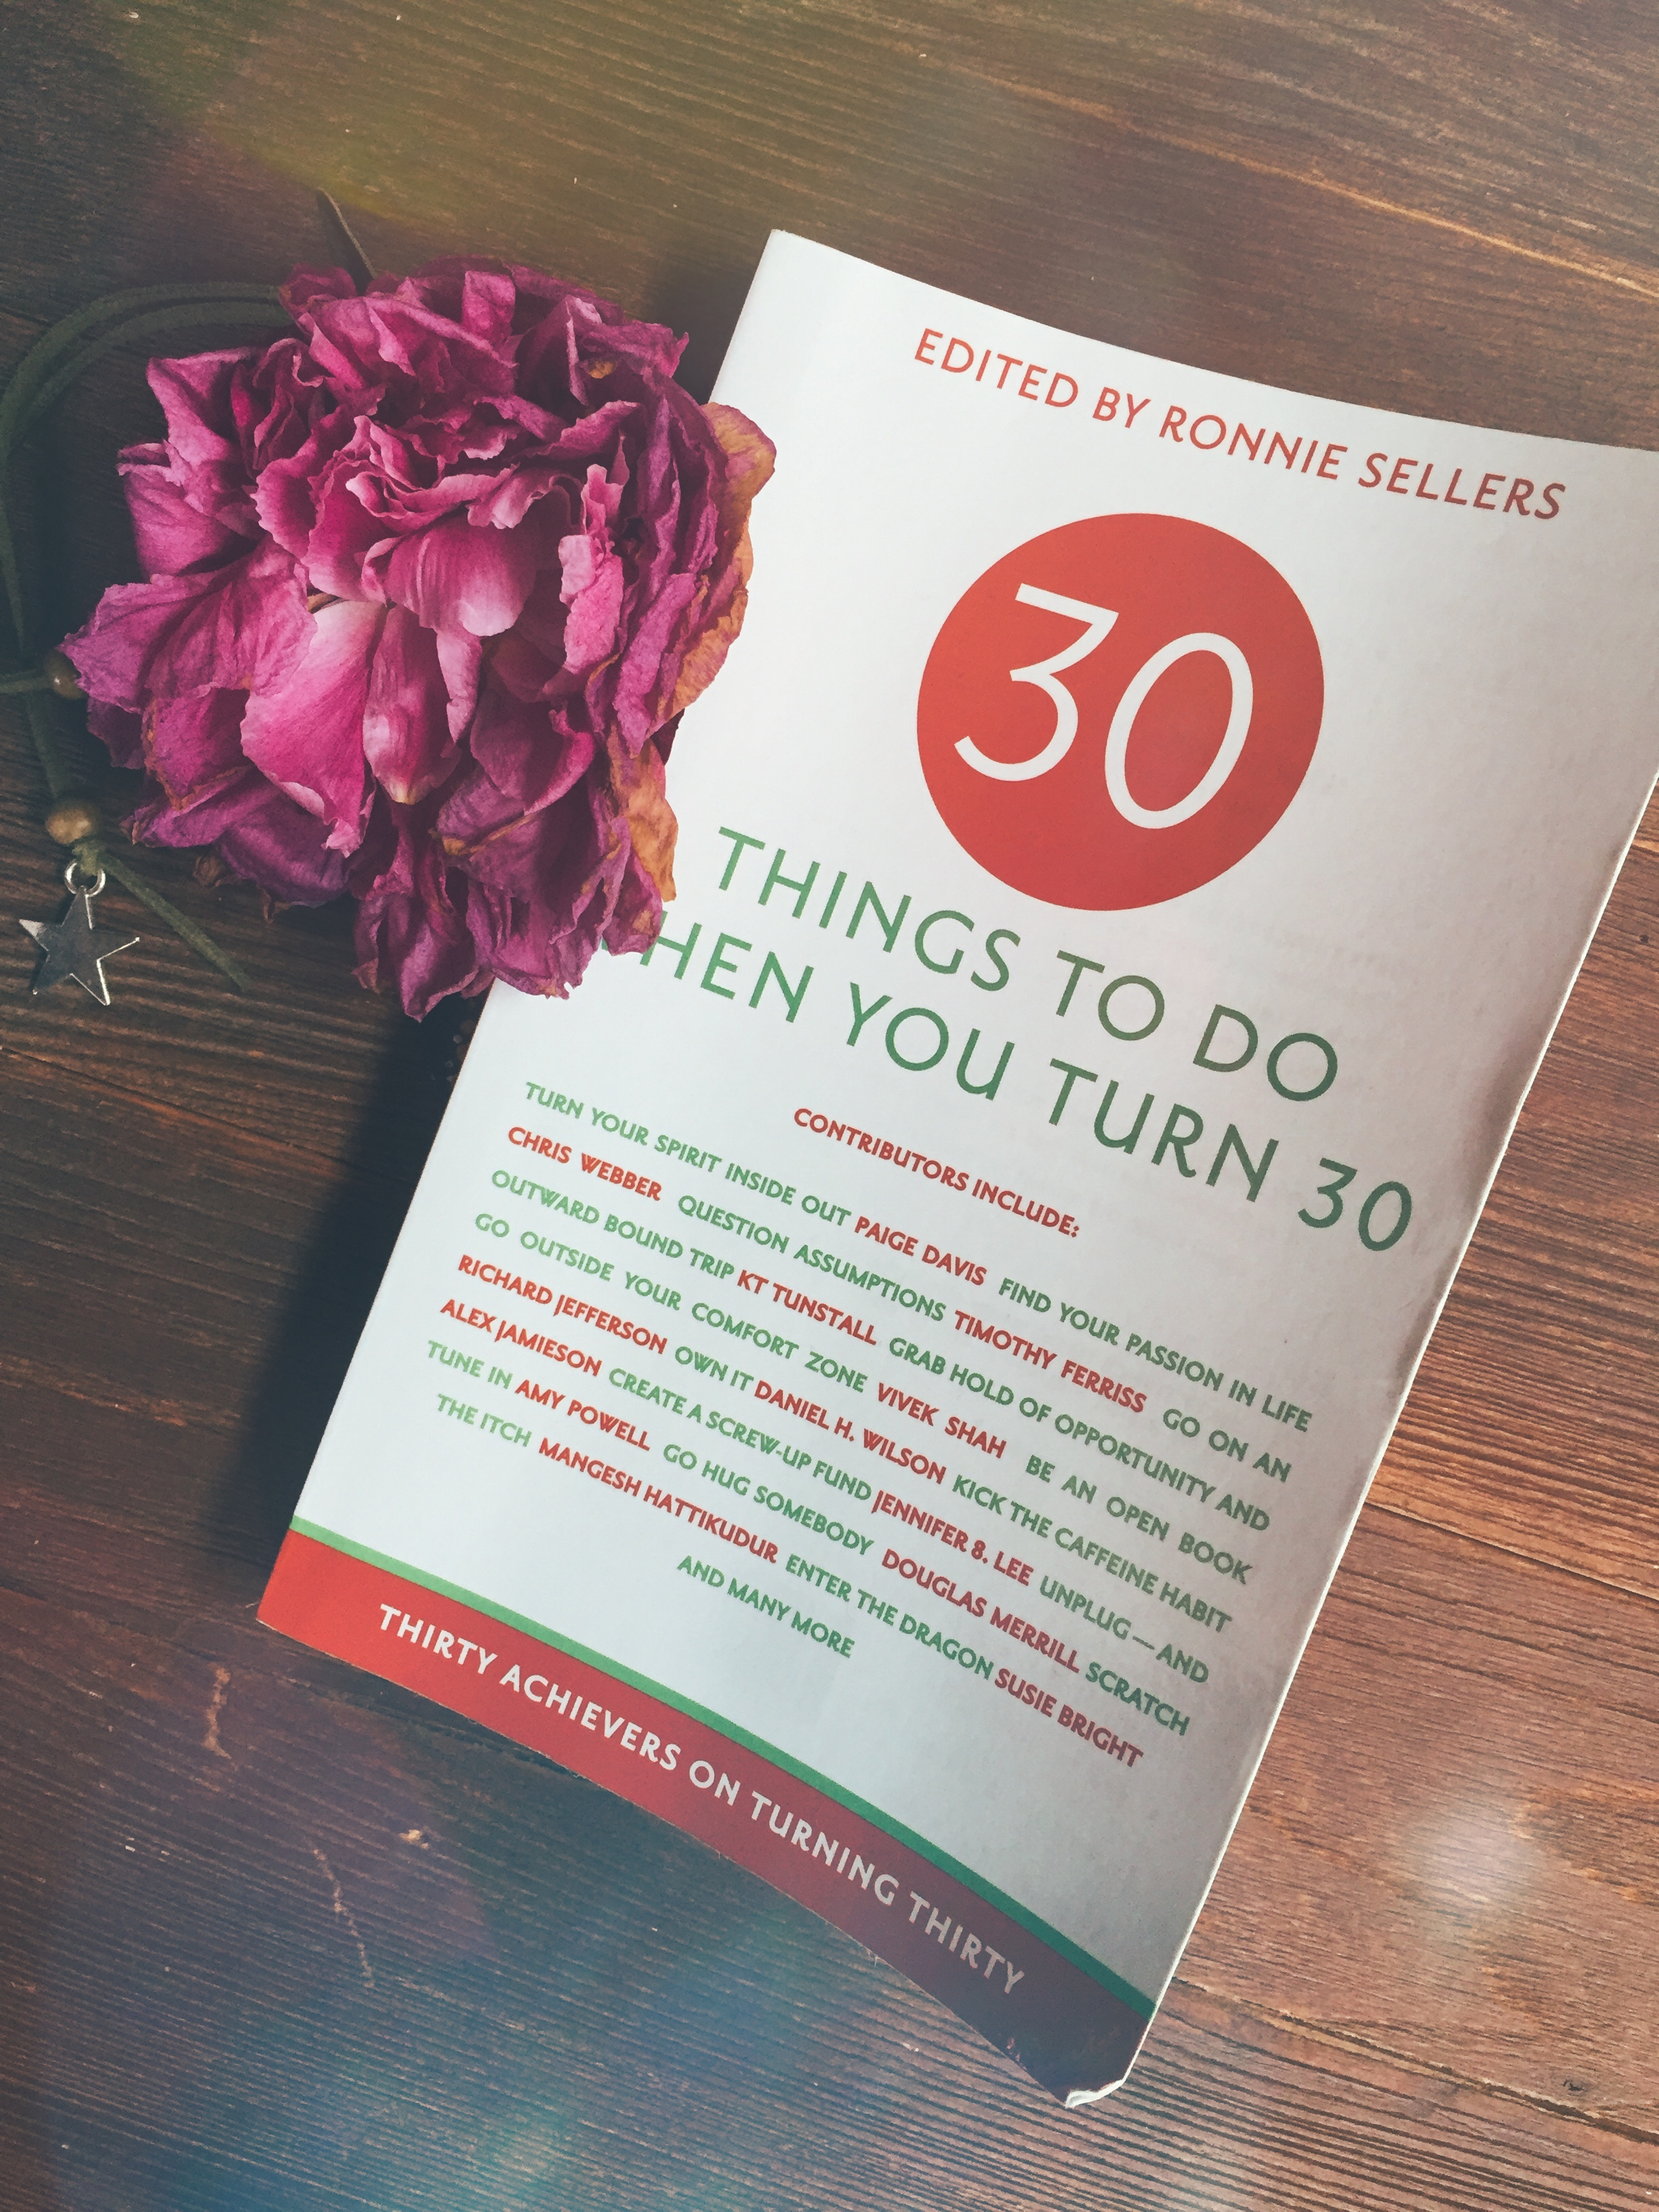 30 Things to Do When you Trn 30